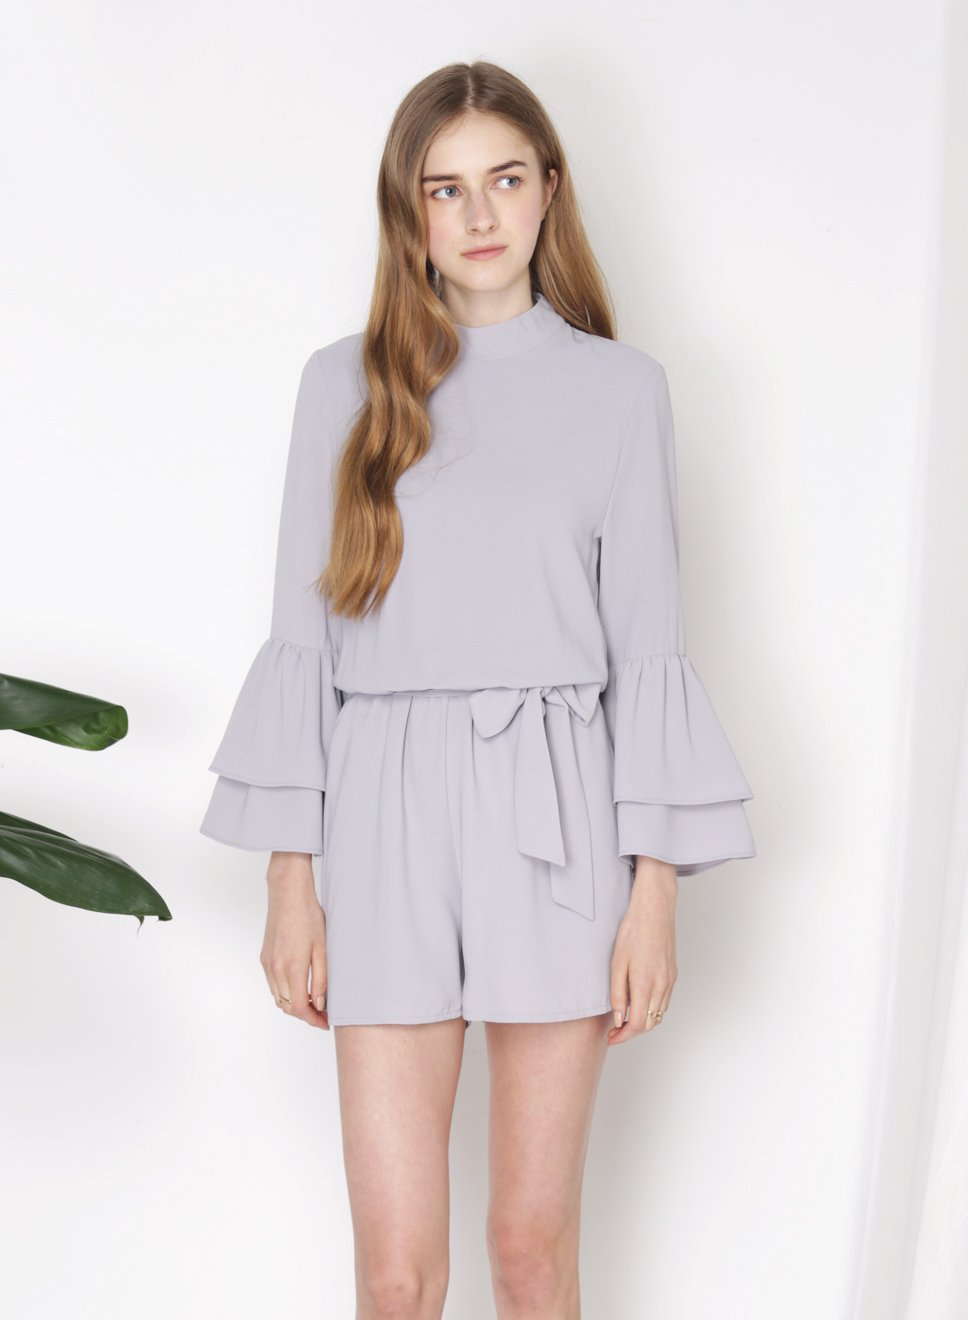 STELLAR Double Tier Ruffle Sleeves Romper (Lilac Grey) at $ 24.00 only sold at And Well Dressed Online Fashion Store Singapore